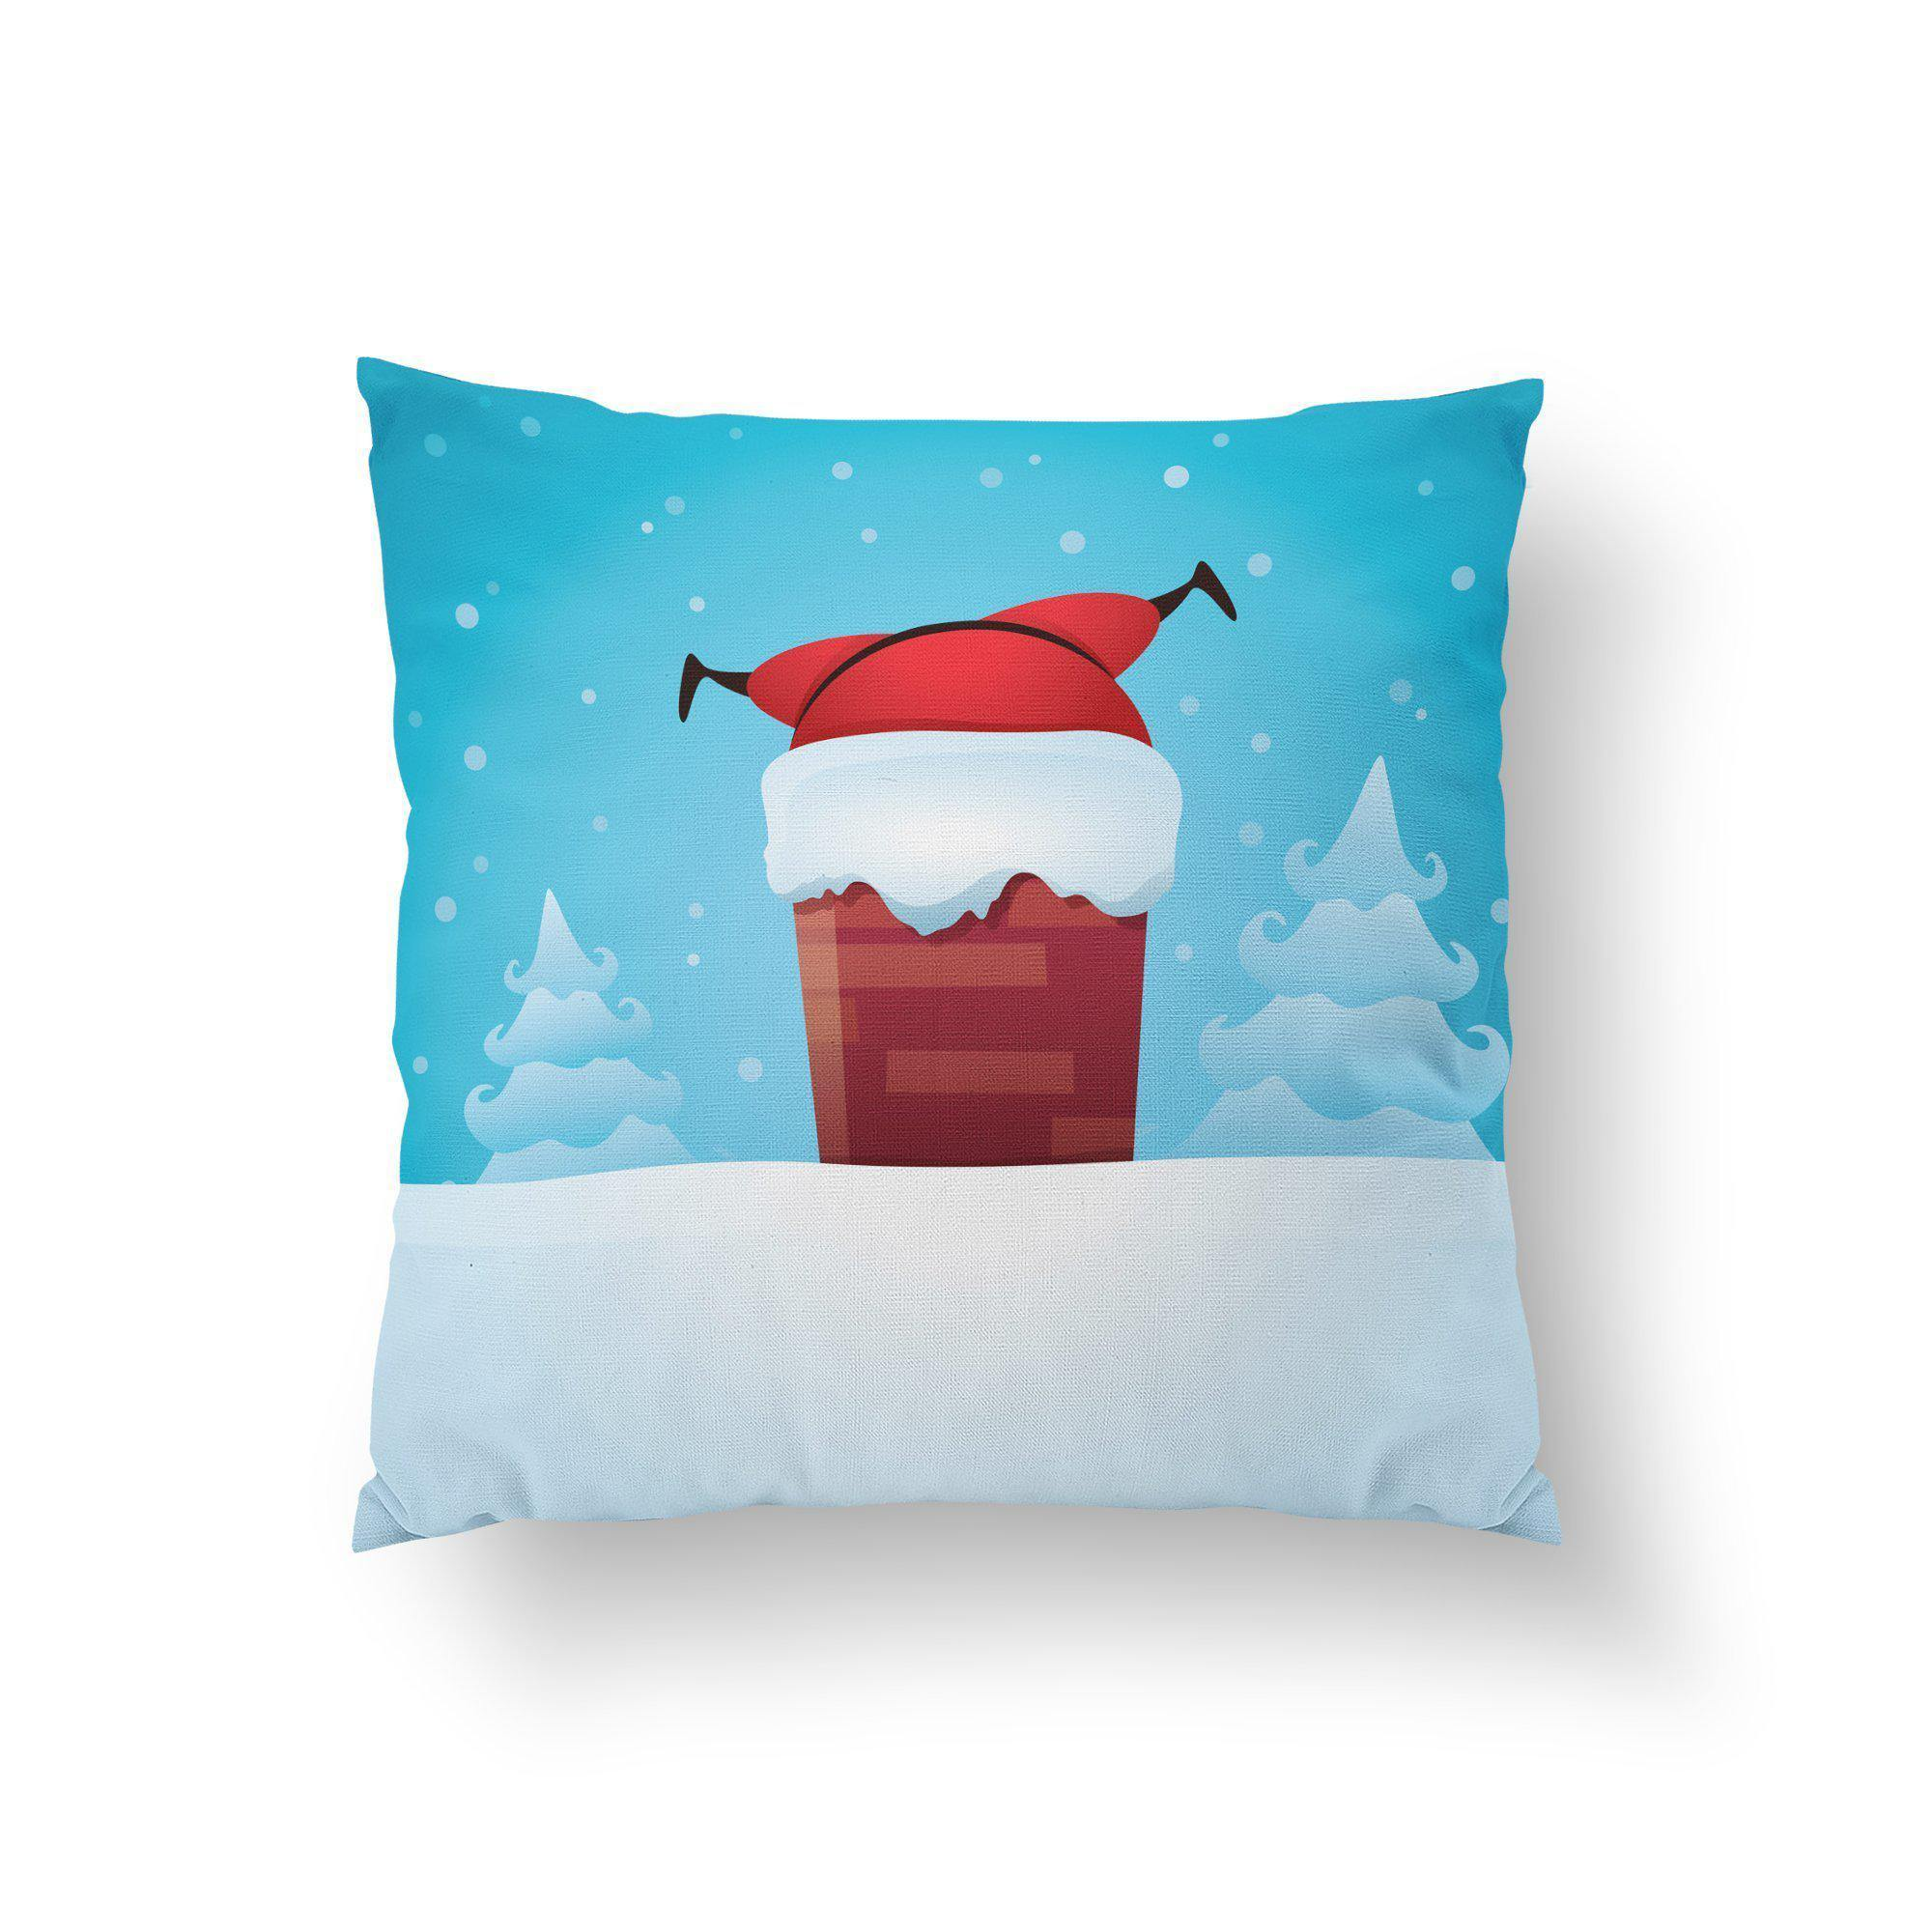 Stuck Santa Christmas Pillow Cover - Pillow Covers - W.FRANCIS